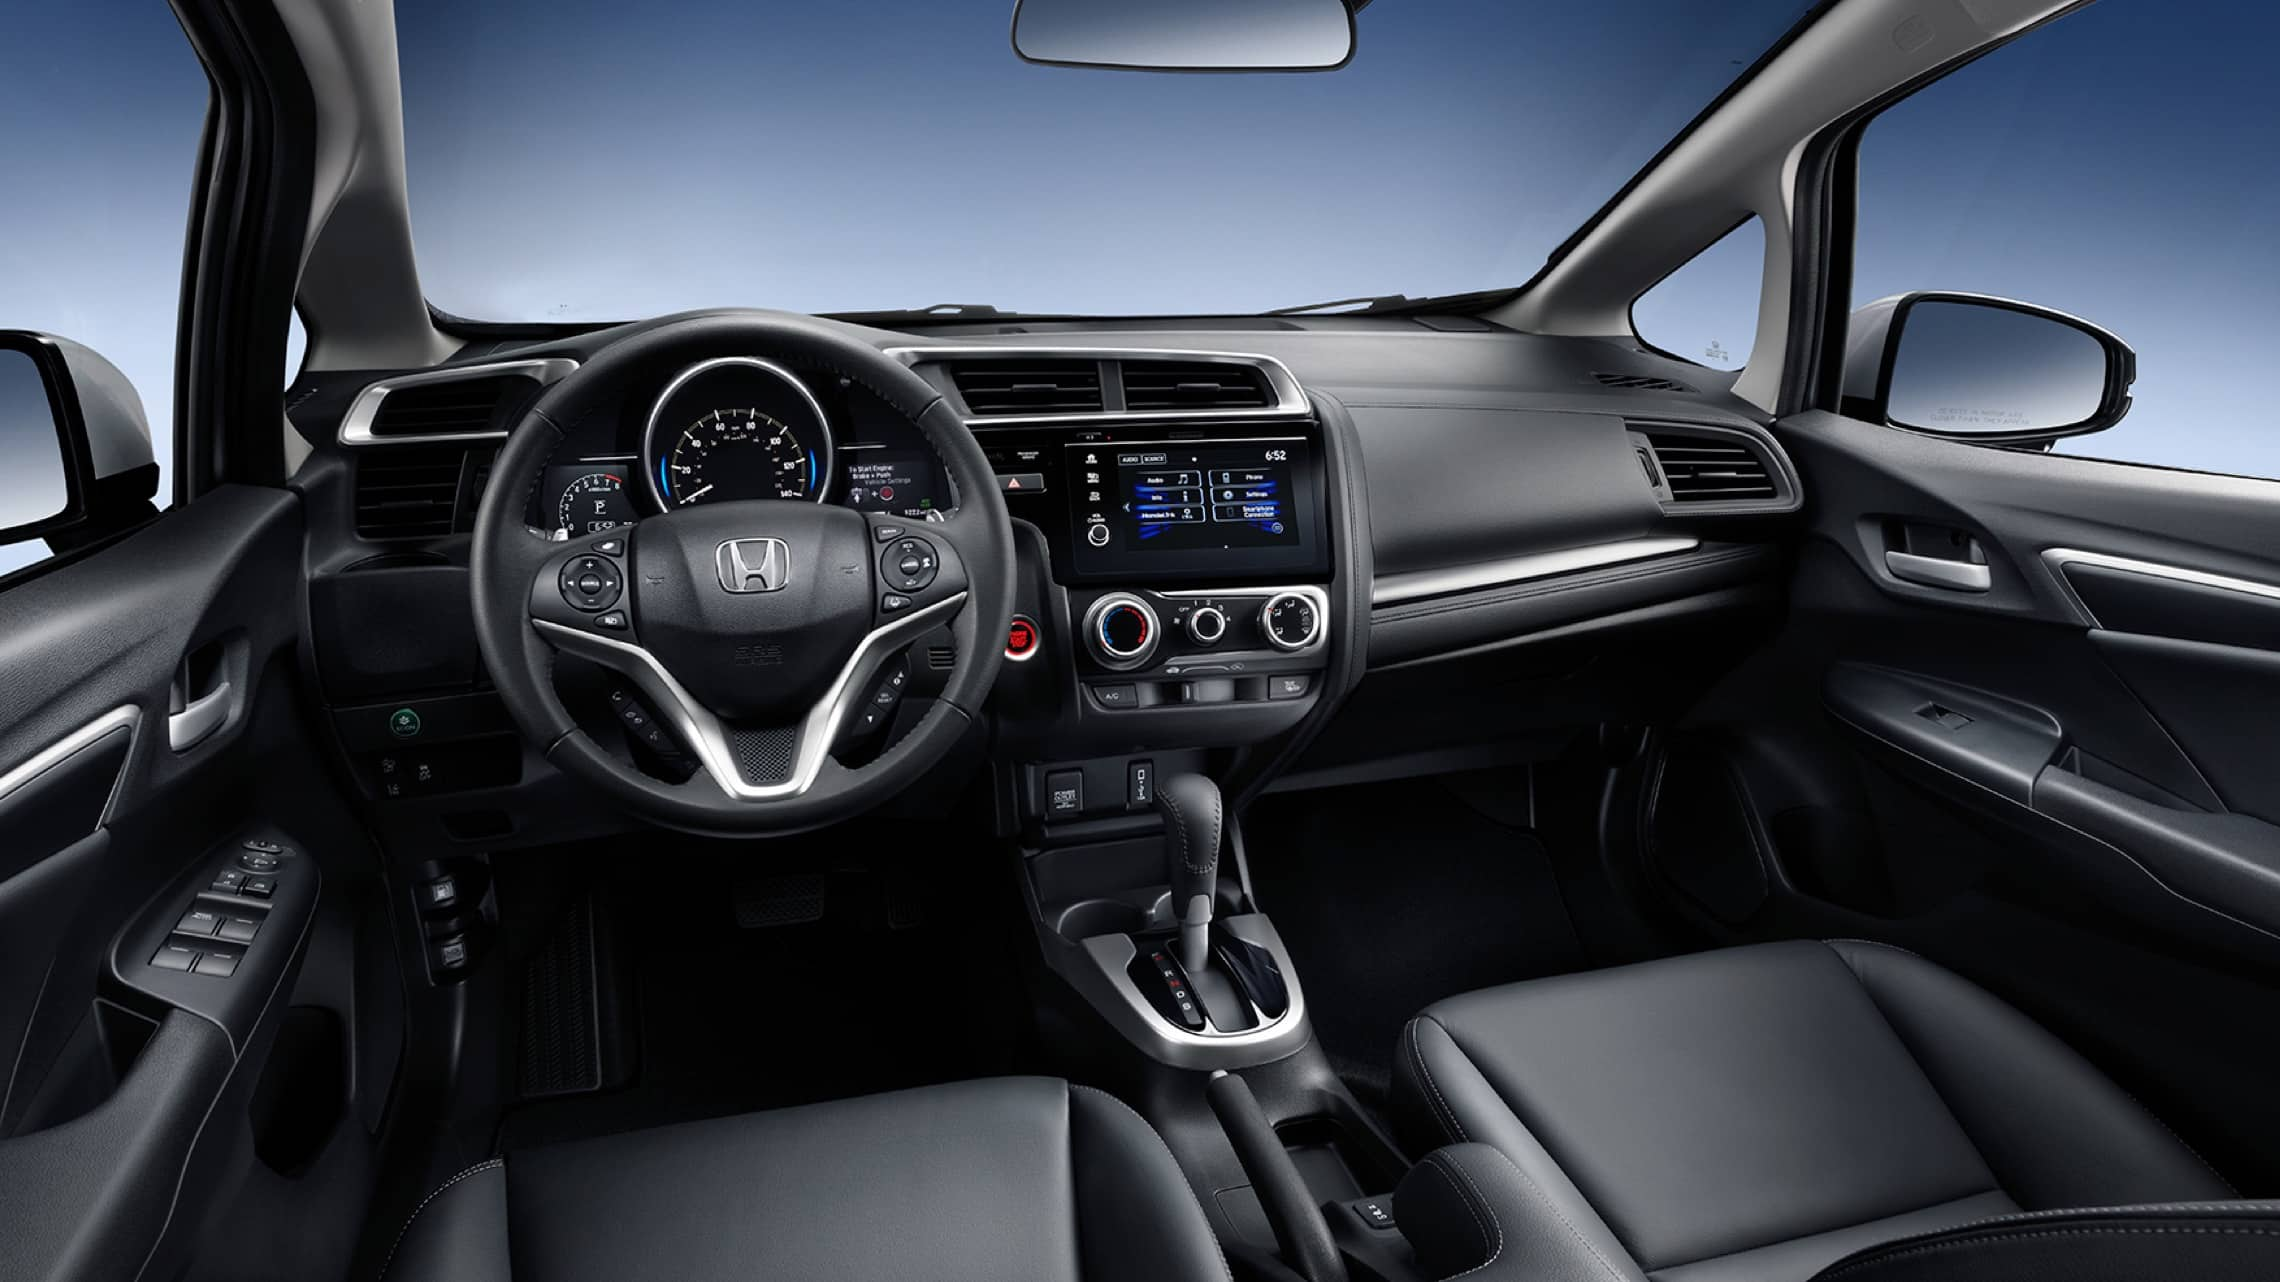 2020 Honda Fit EX-L leather-wrapped steering wheel detail in Black Leather.